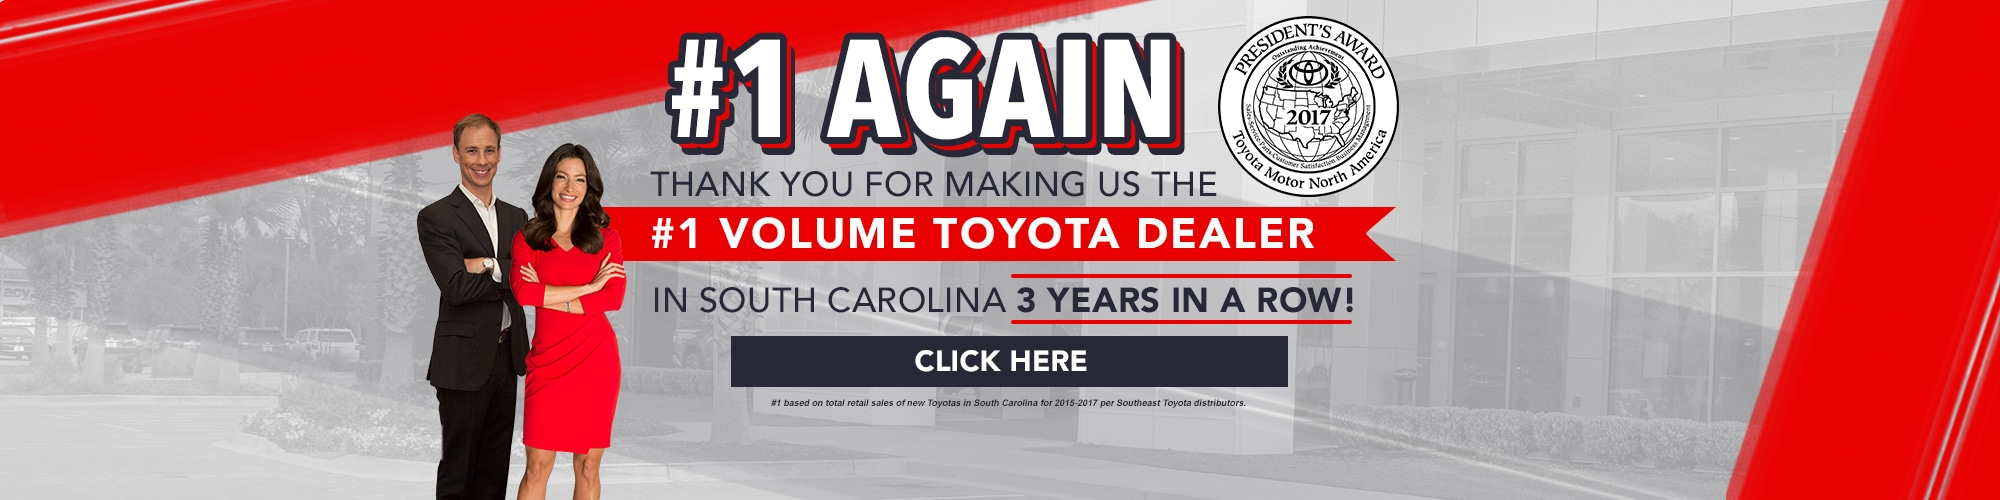 Toyota Dealership Charleston Sc Near Mount Pleasant Summerville